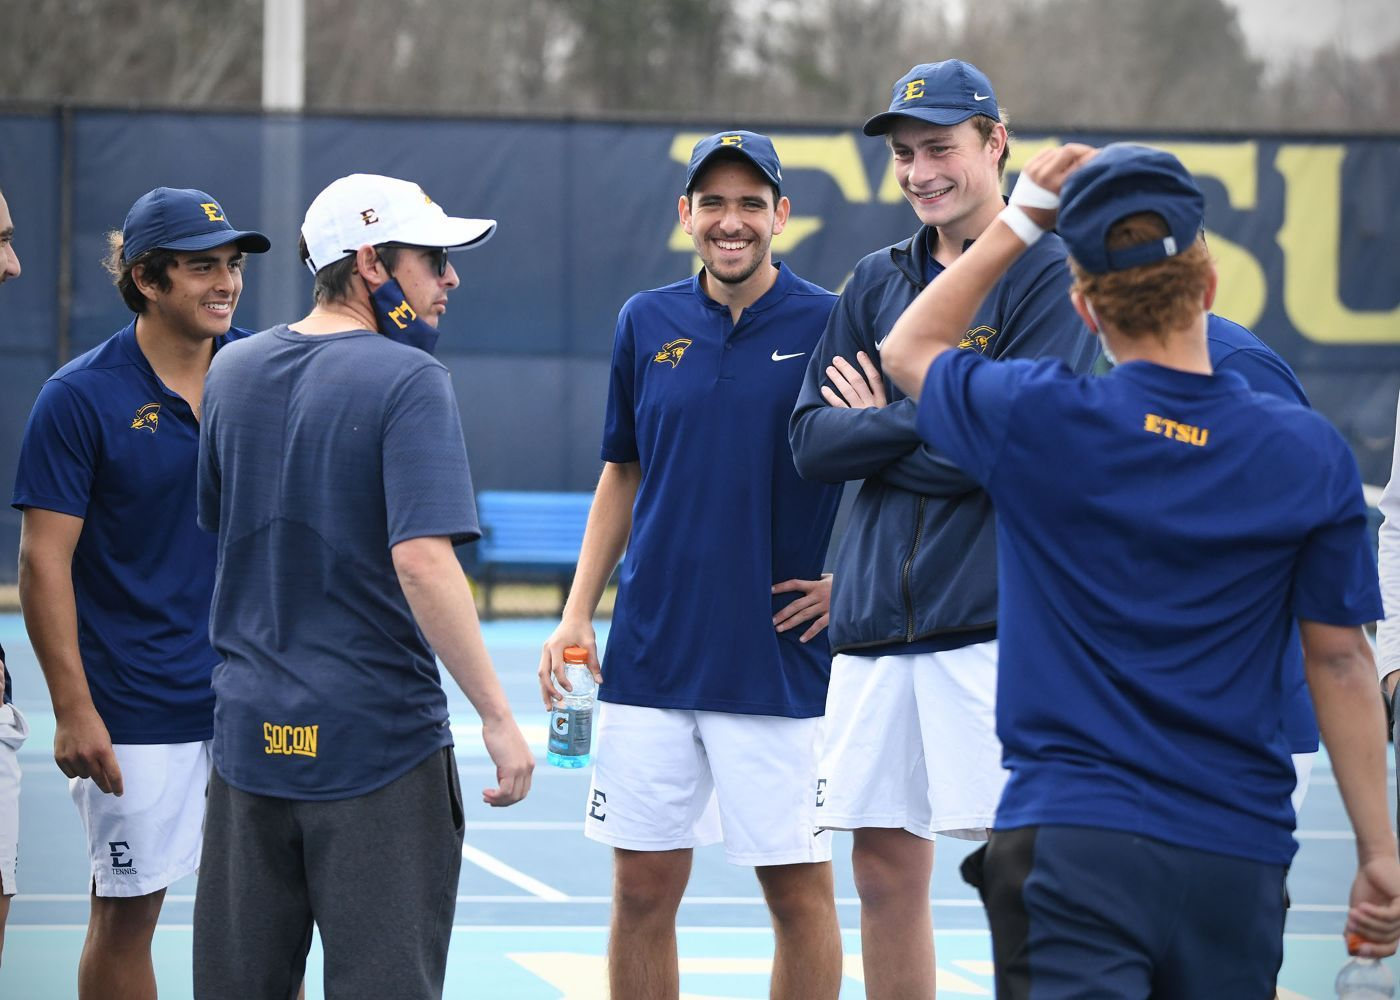 Bucs Ready for Middle Georgia Swing